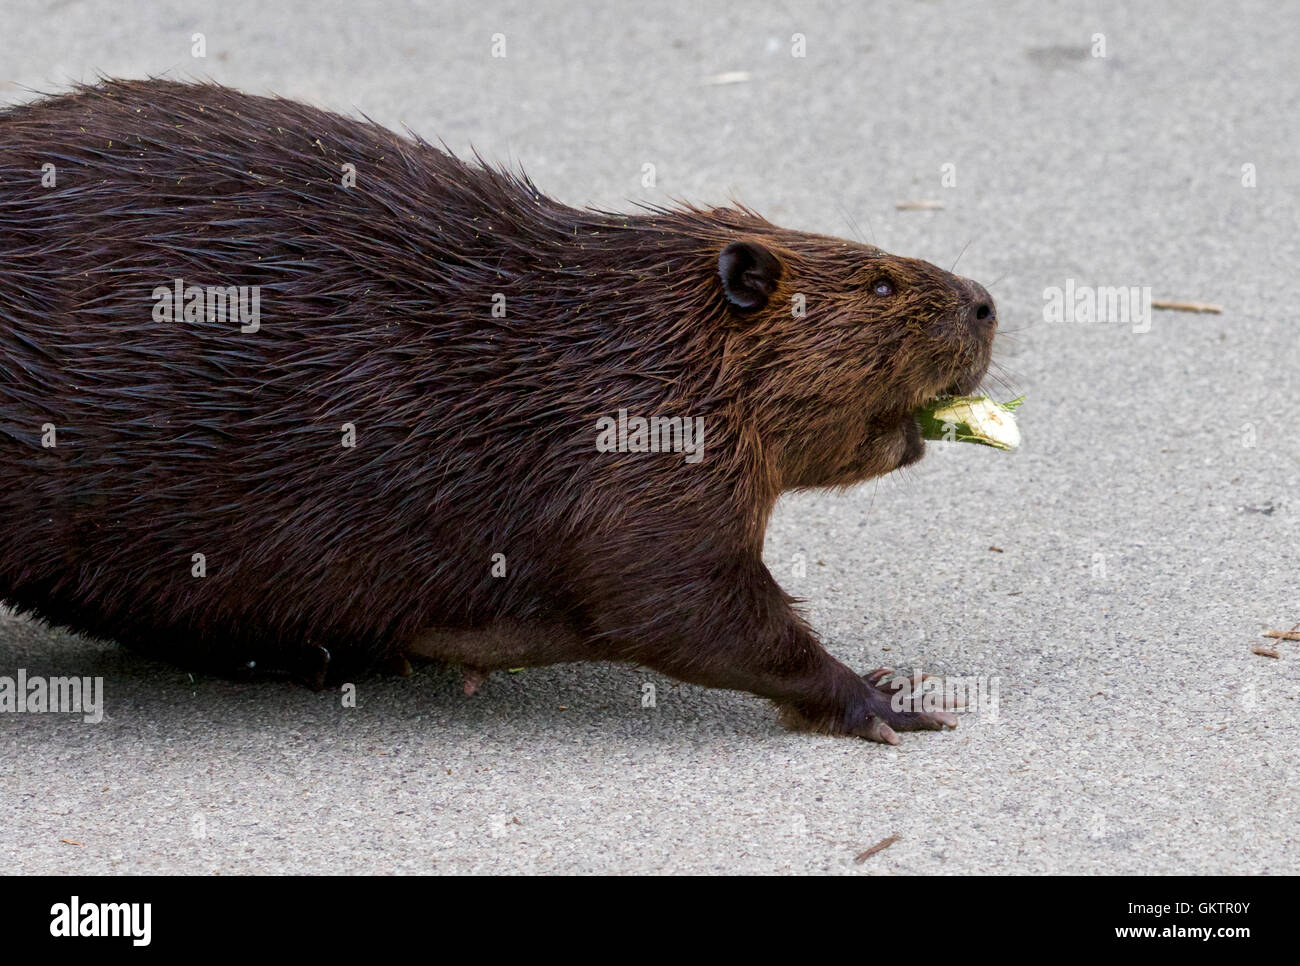 Isolated close image with a Canadian beaver - Stock Image